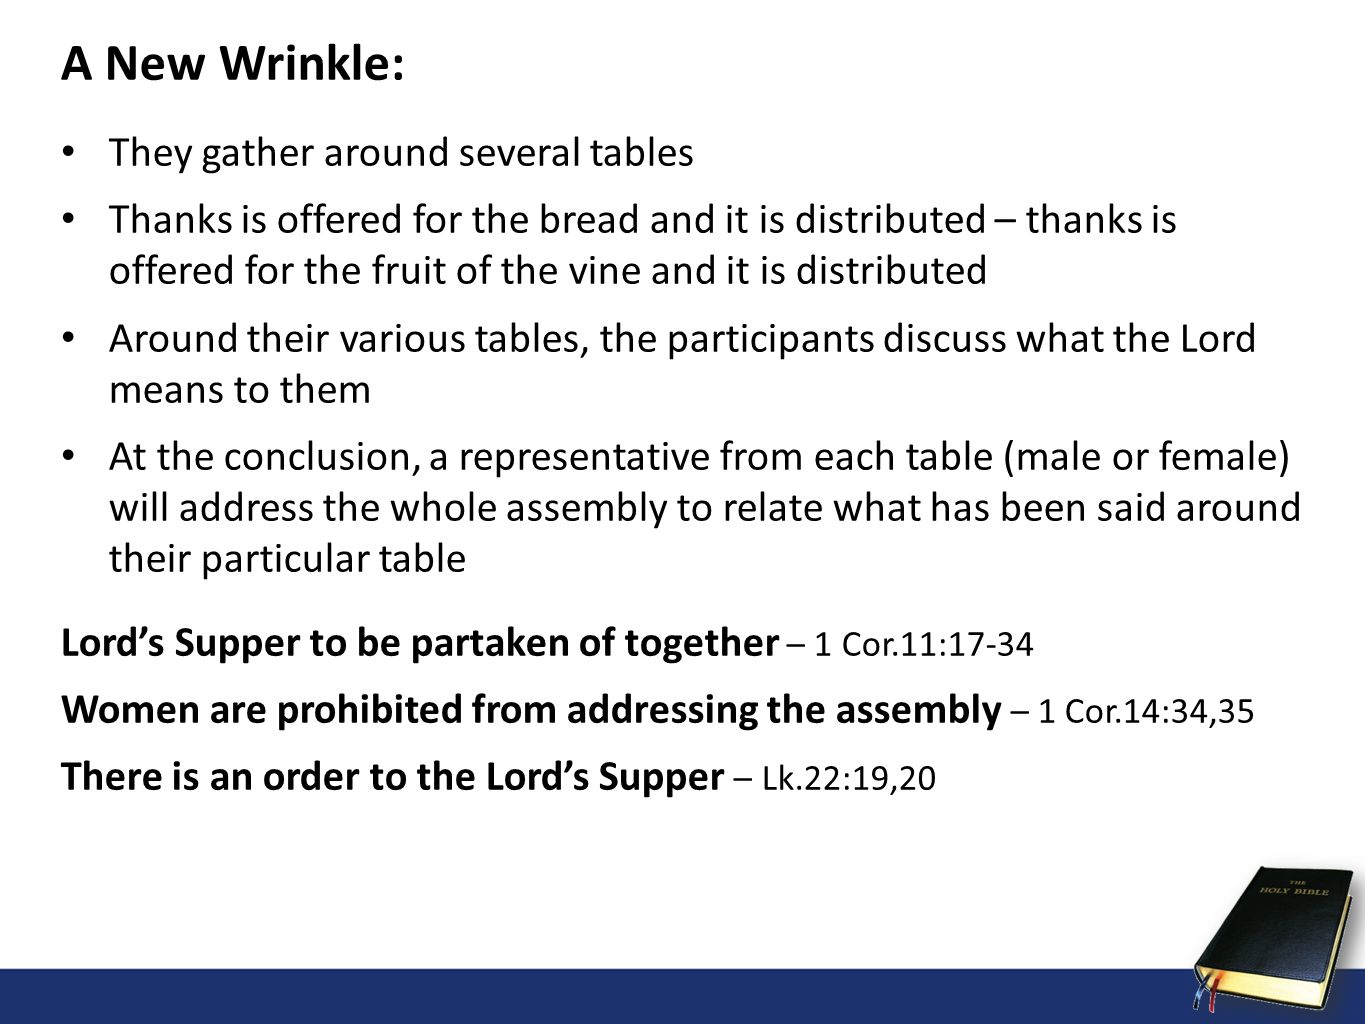 A New Wrinkle: They gather around several tables Thanks is offered for the bread and it is distributed – thanks is offered for the fruit of the vine and it is distributed Around their various tables, the participants discuss what the Lord means to them At the conclusion, a representative from each table (male or female) will address the whole assembly to relate what has been said around their particular table Lords Supper to be partaken of together – 1 Cor.11:17-34 Women are prohibited from addressing the assembly – 1 Cor.14:34,35 There is an order to the Lords Supper – Lk.22:19,20